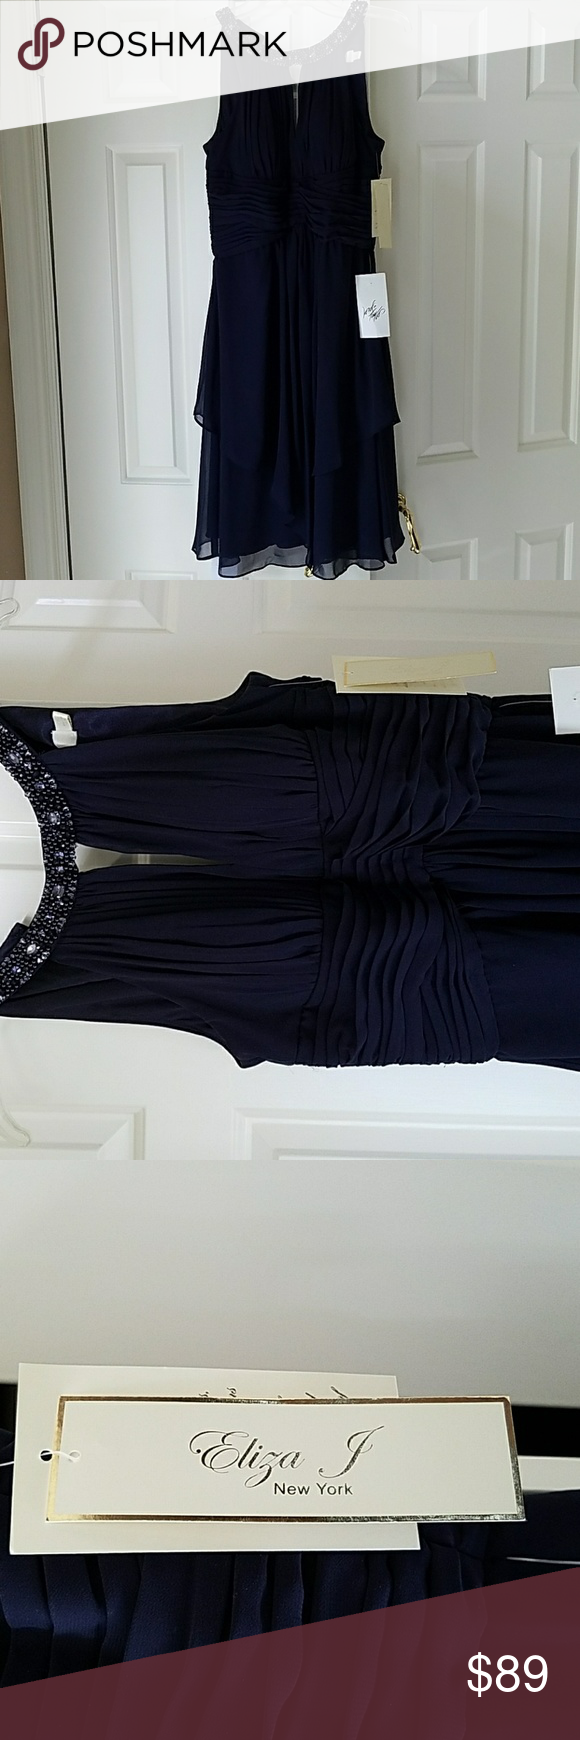 Gorgeous wedding guest or prom dress nwt